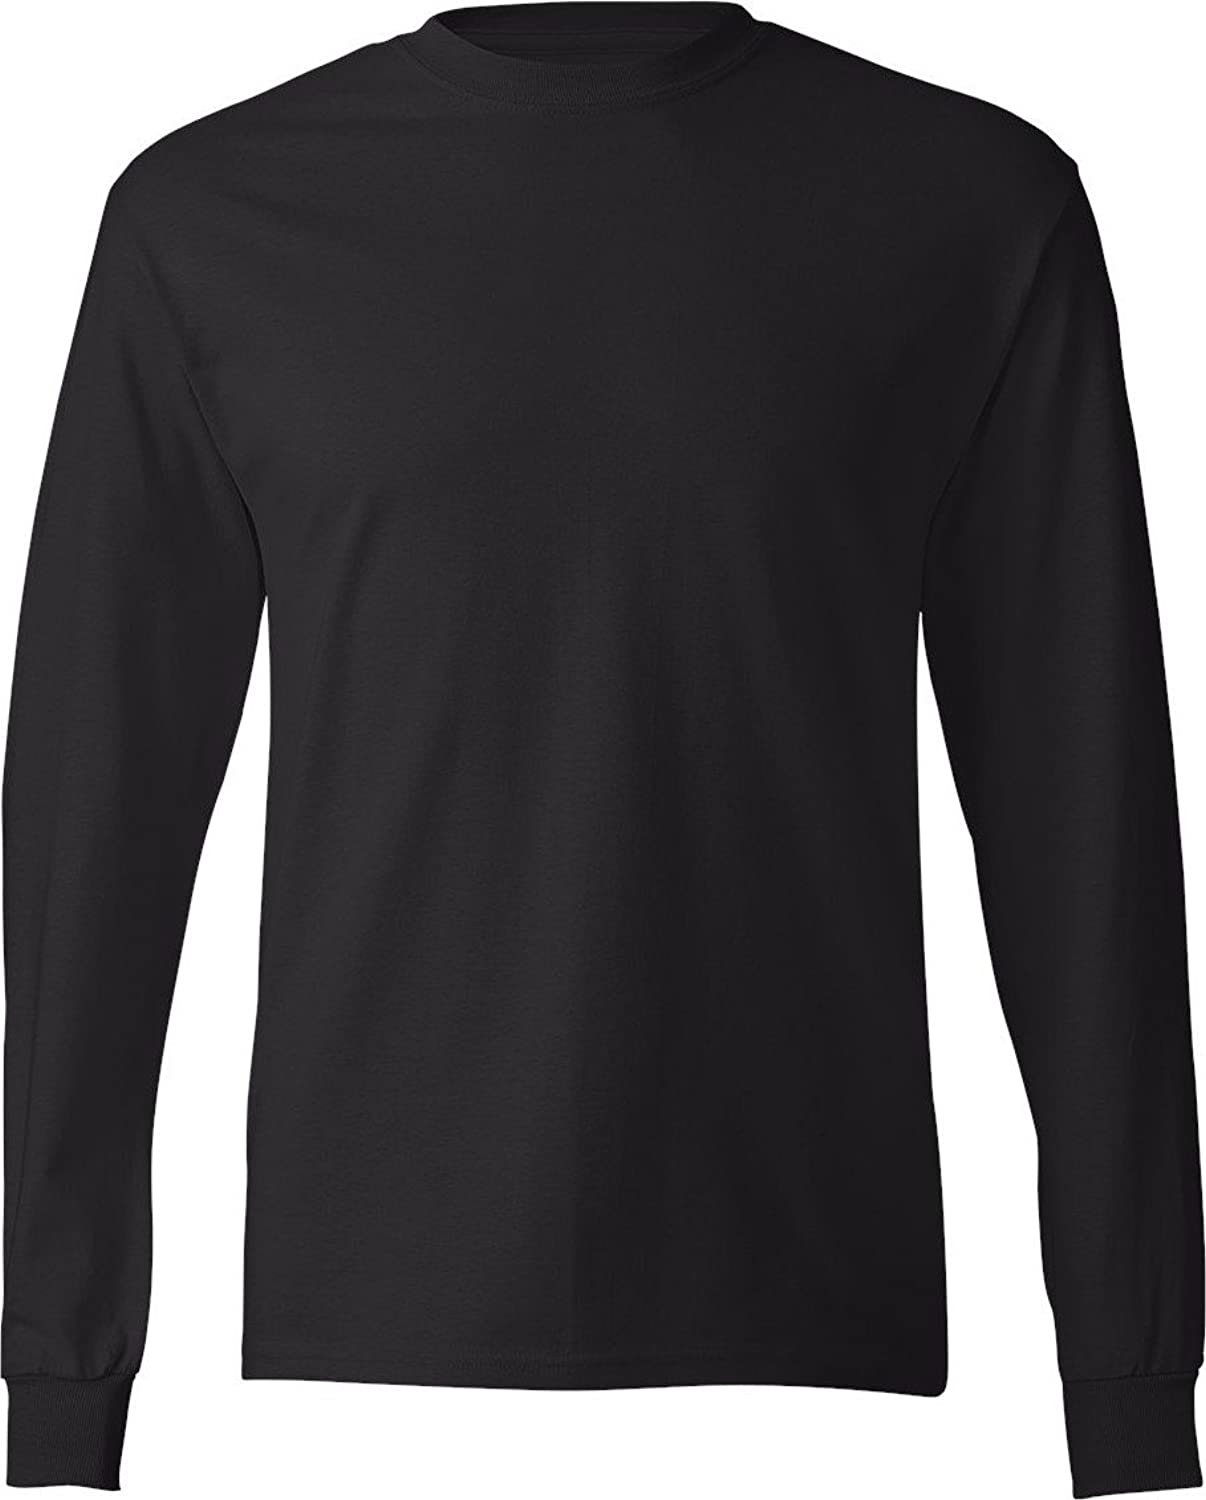 Black Long Sleeve Shirt Men Artee Shirt